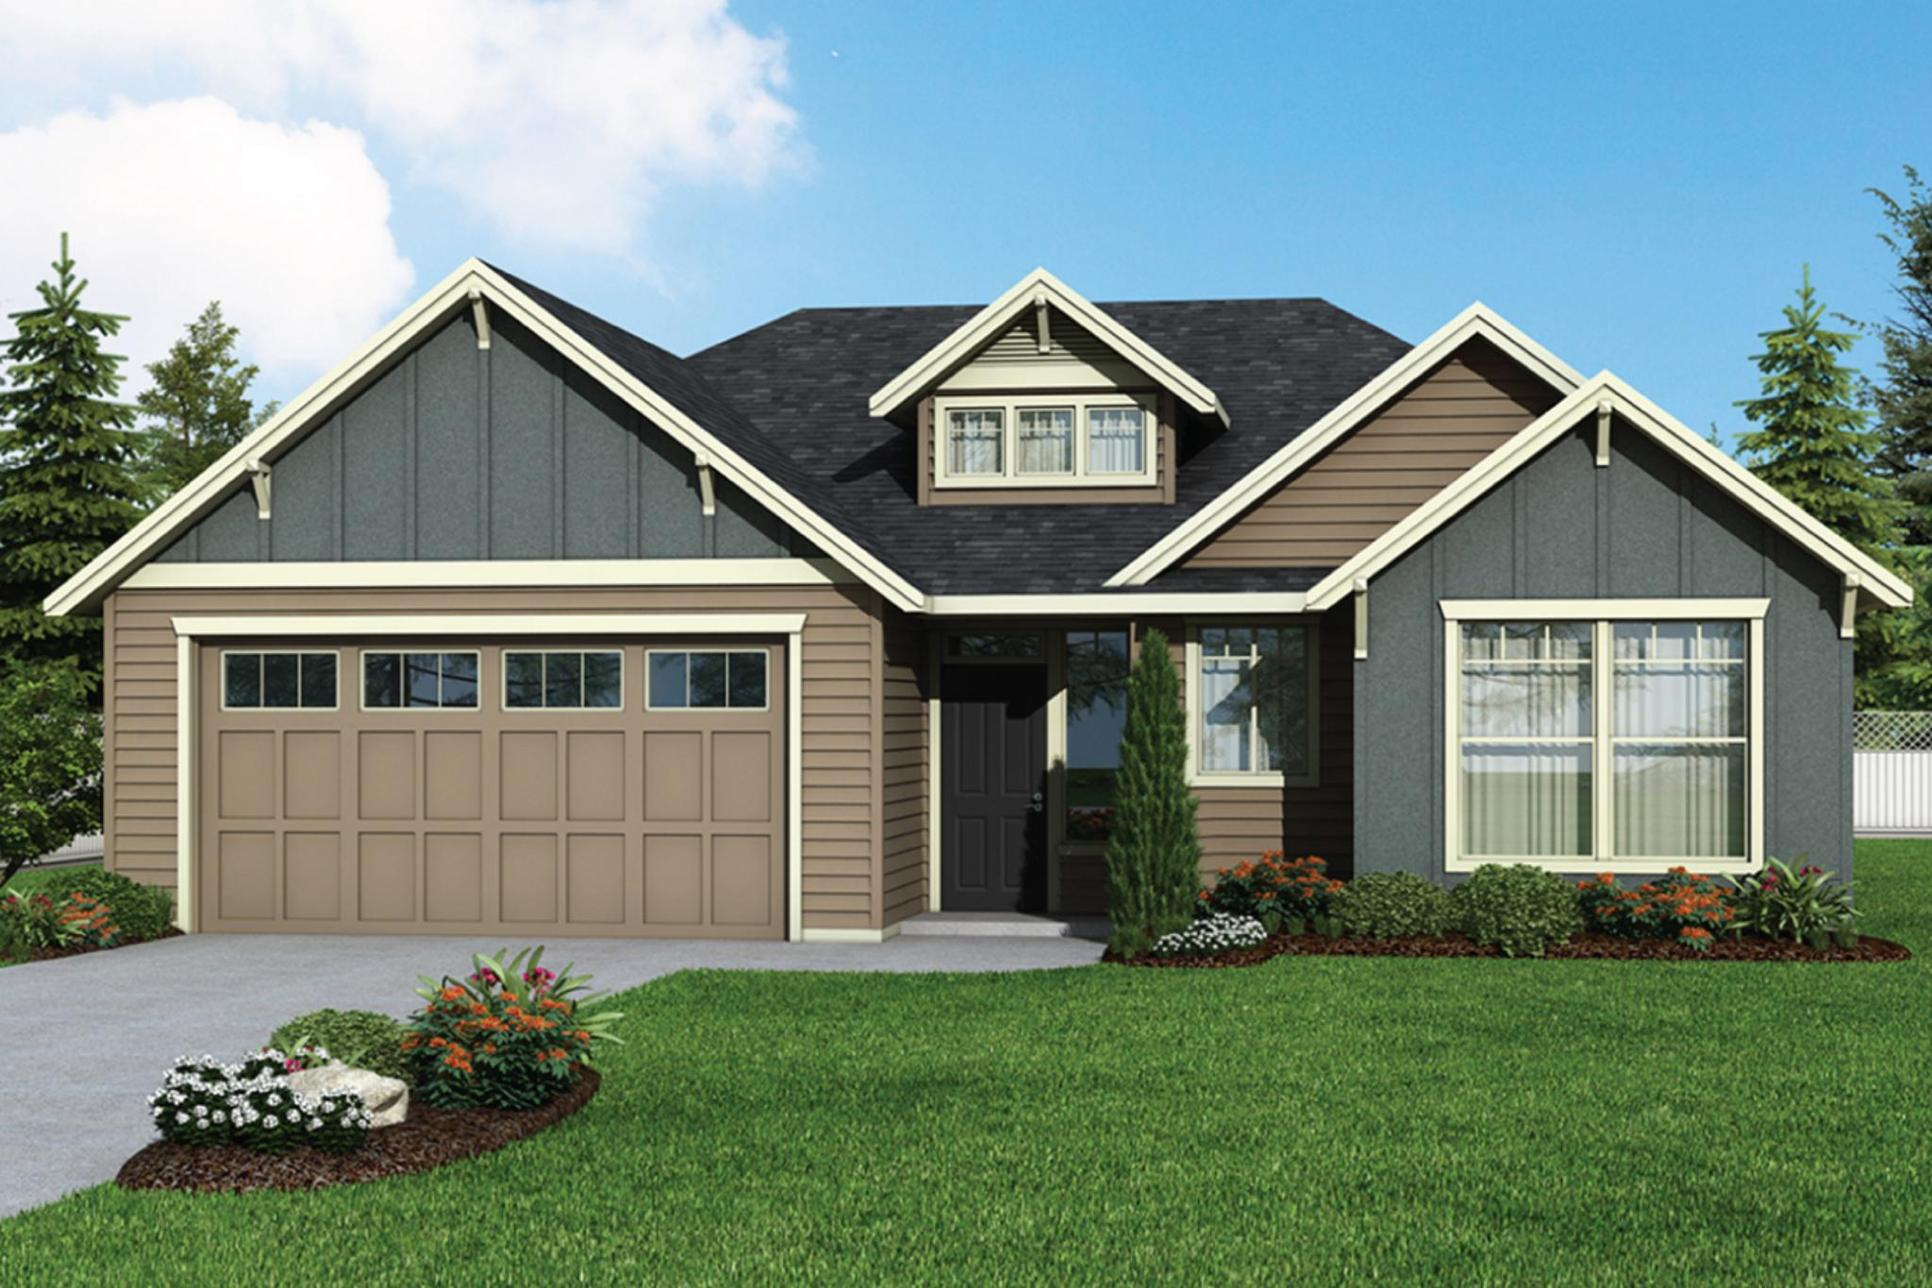 Plan 1852 Elevation 2 Rendering by Aho Construction:Plan 1852 Elevation 2